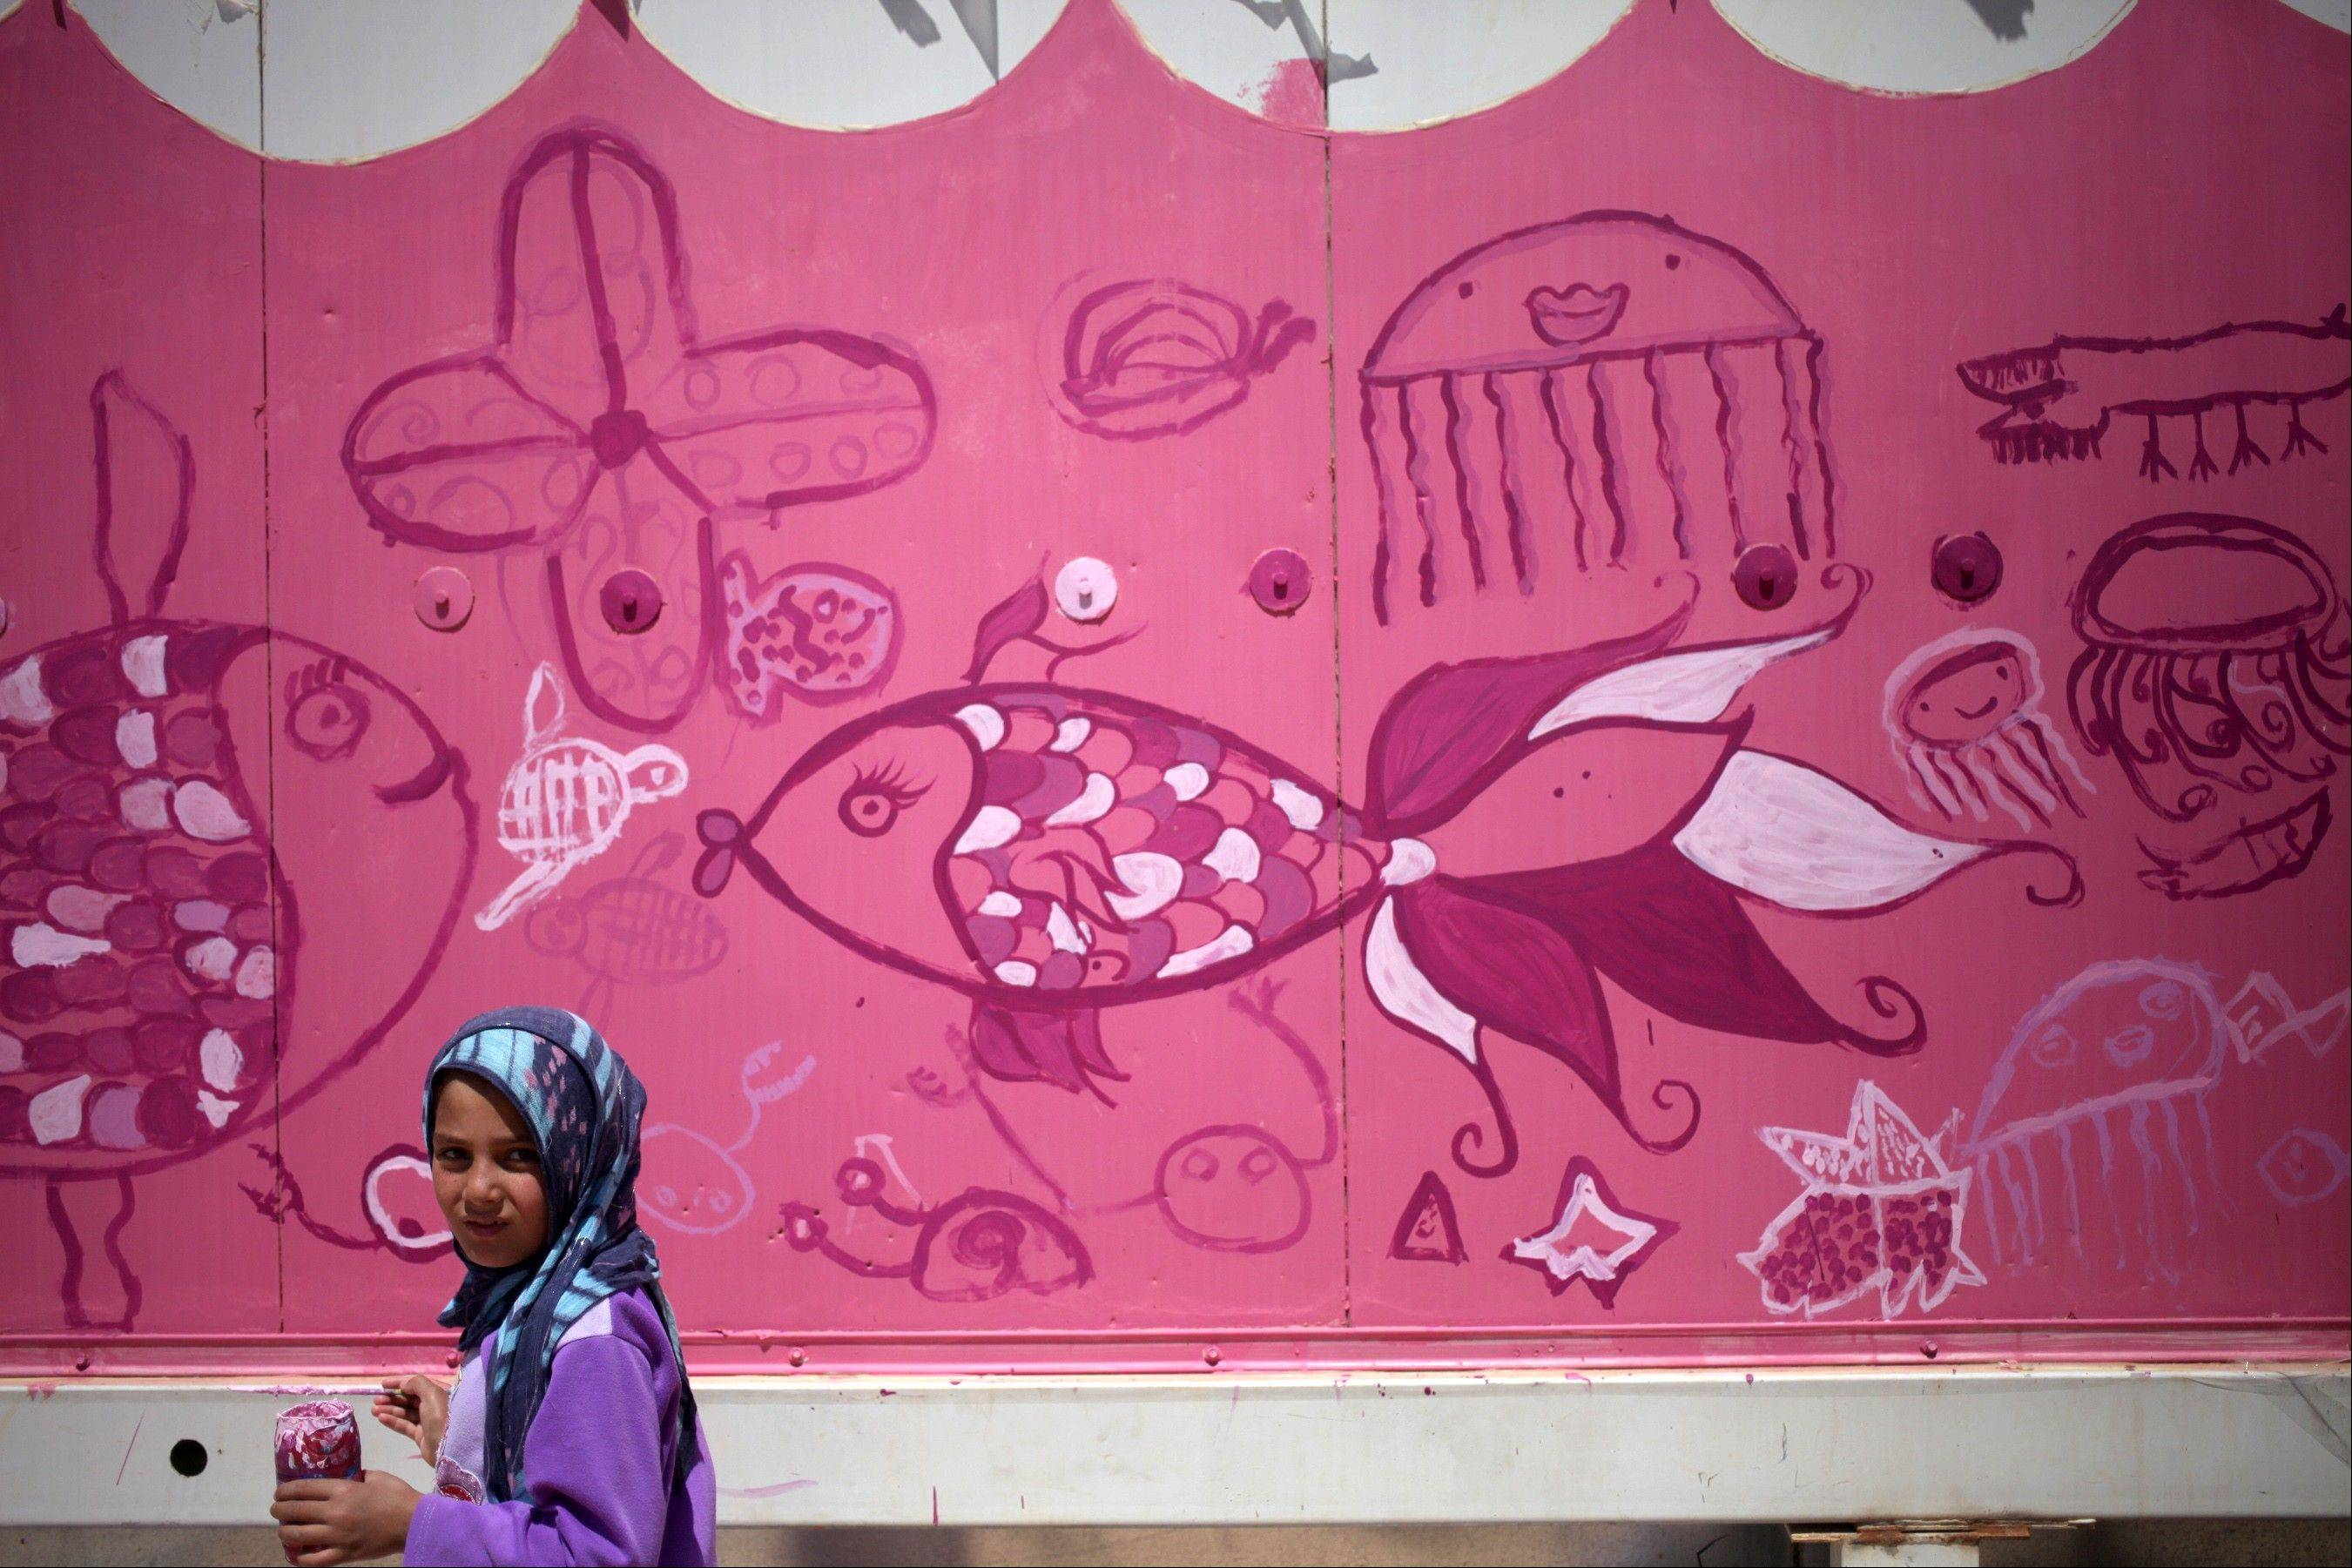 A Syrian refugee girl pauses while painting a mural on the wall of one of the public bathrooms to make it look like an aquarium, at Zaatari refugee camp, near the Syrian border, in Mafraq, Jordan, Tuesday, July 23, 2013. A U.S.-based artist is leading children haunted by the conflict to paint buildings and walls at the crowded camp with murals expressing their lives and hopes.